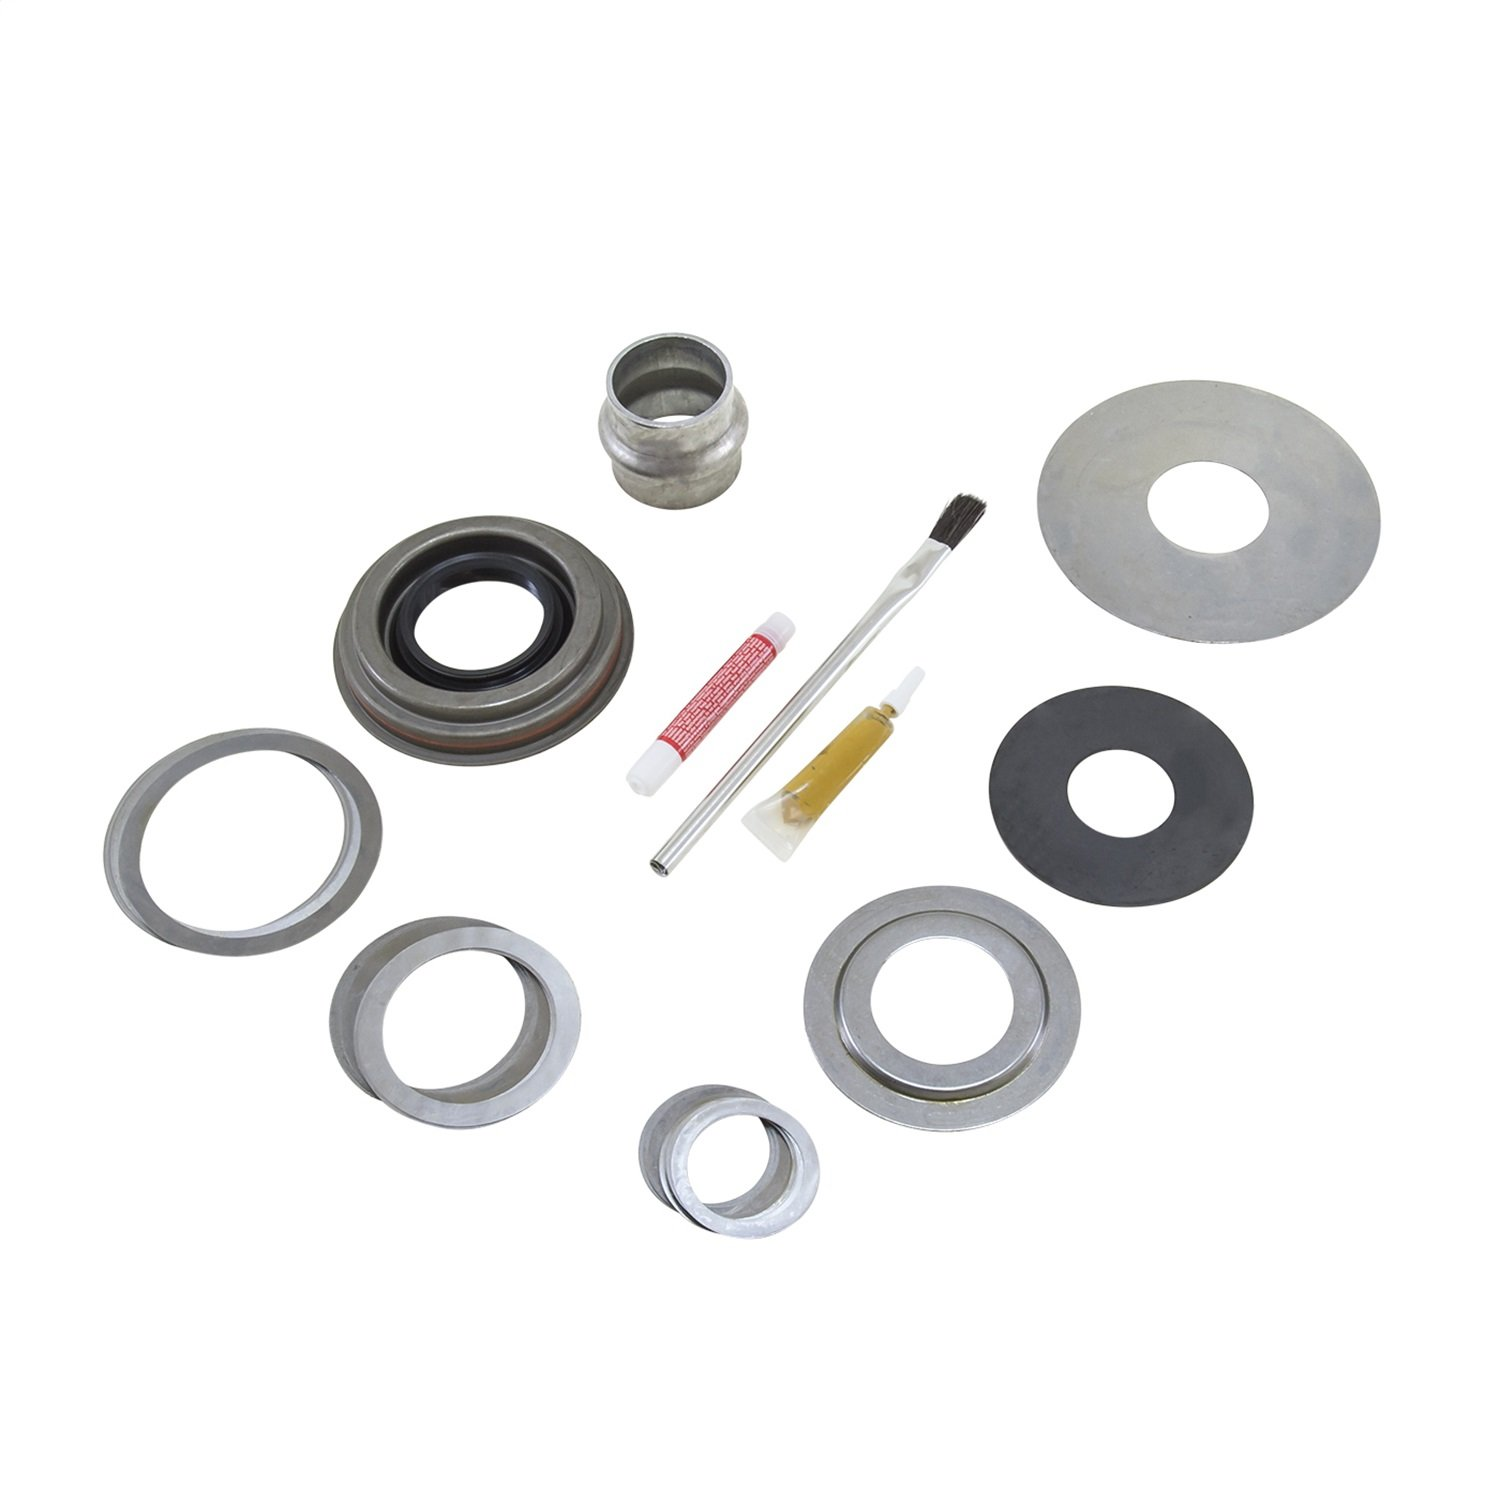 Yukon Gear & Axle (MK D30-TJ) Minor Installation Kit for Dana 30 Short-Pinion Front Differential